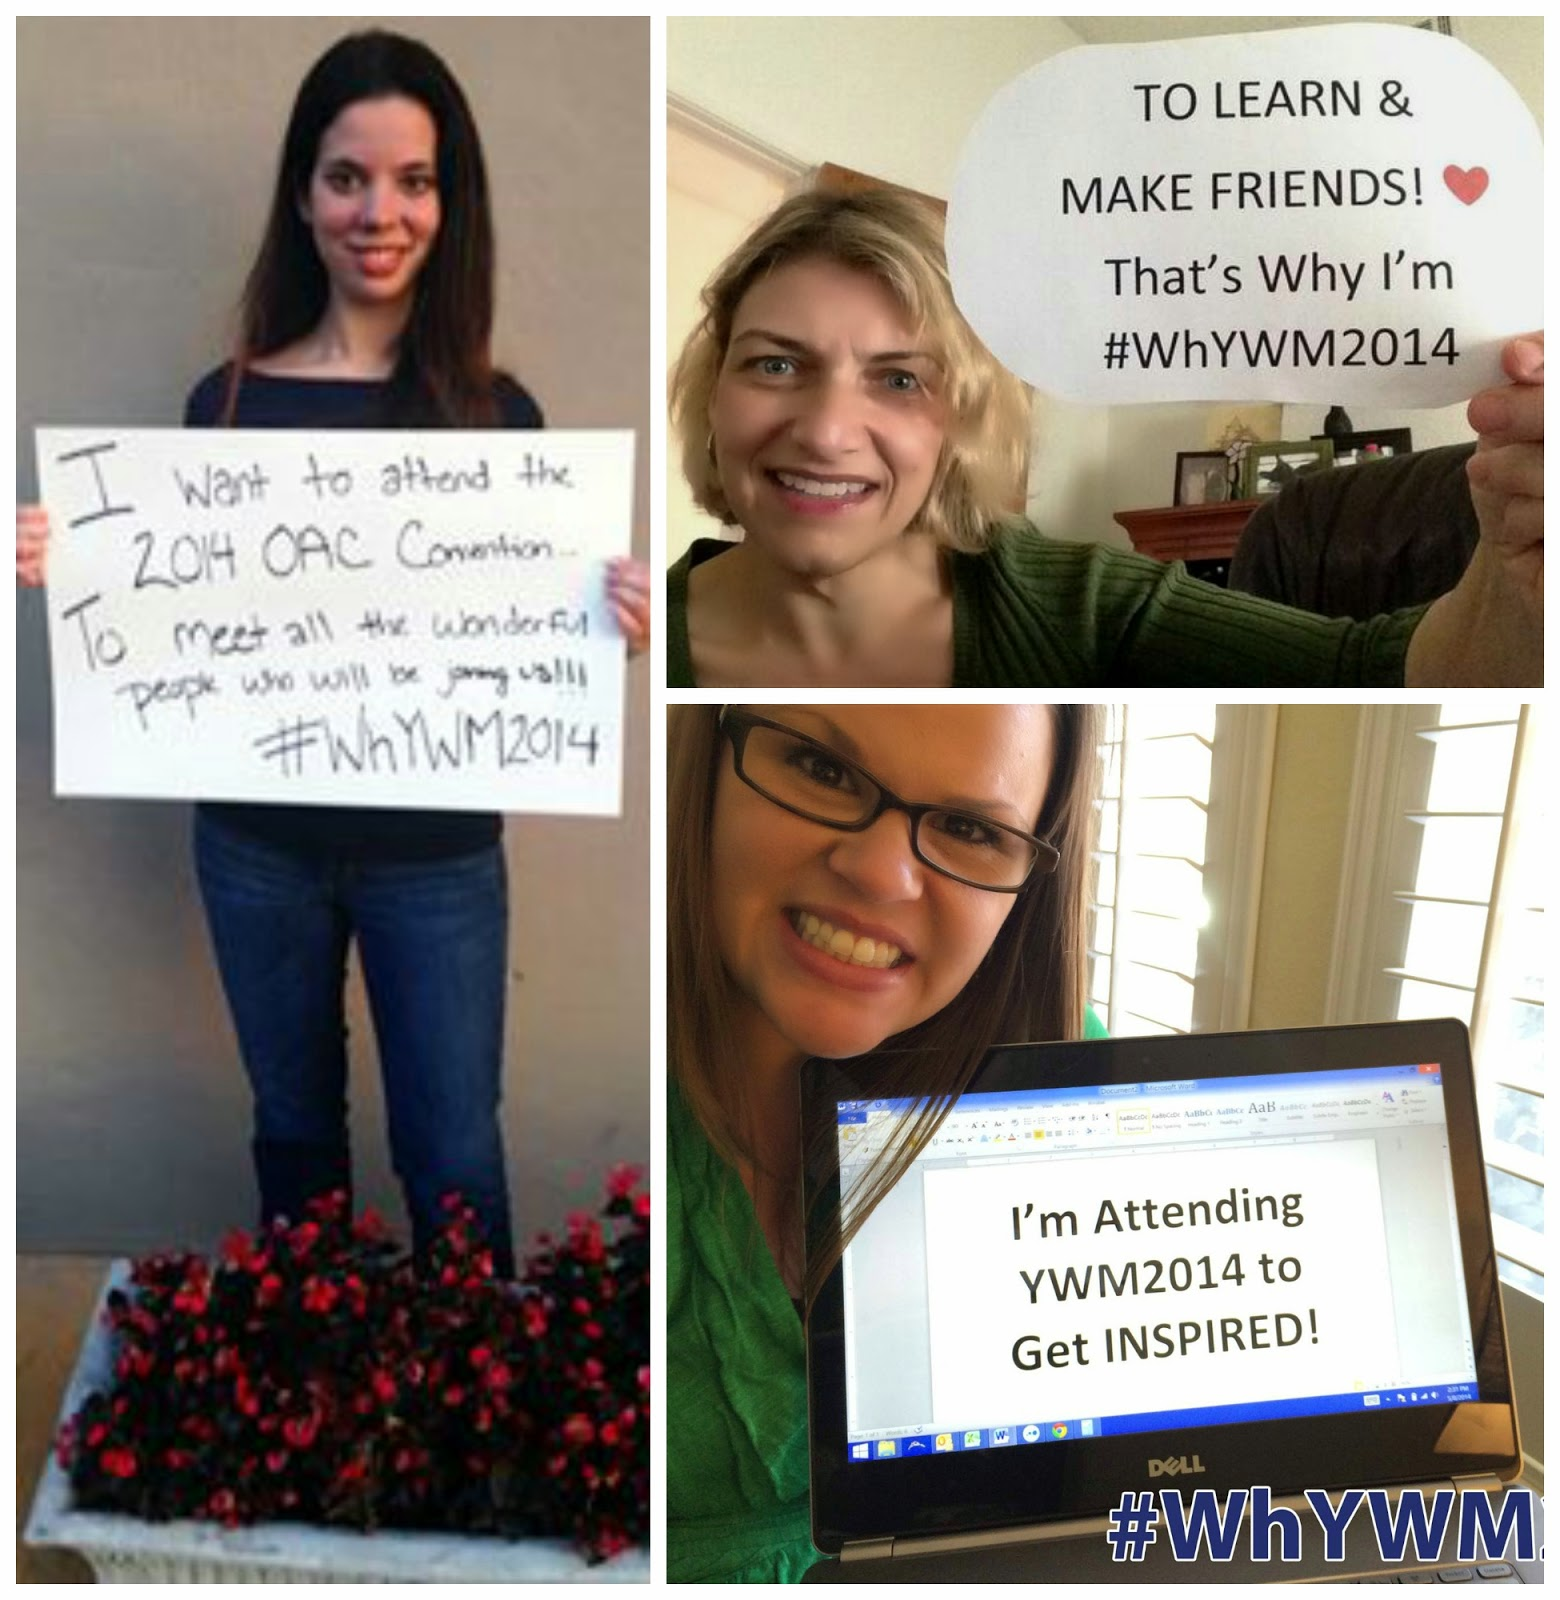 ywm2014+collage Weight Loss Recipes 2 Things from the Obesity Action Coalition